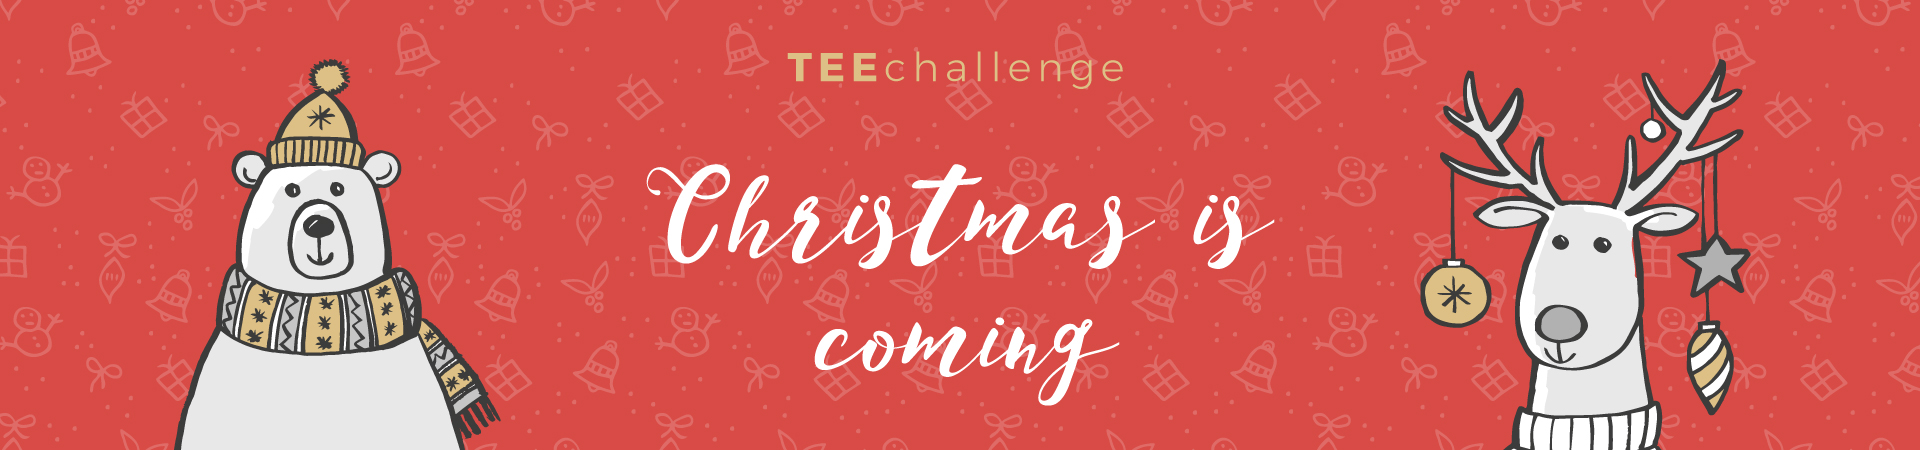 Teechallenge CHRISTMAS IS COMING Banner Desktop